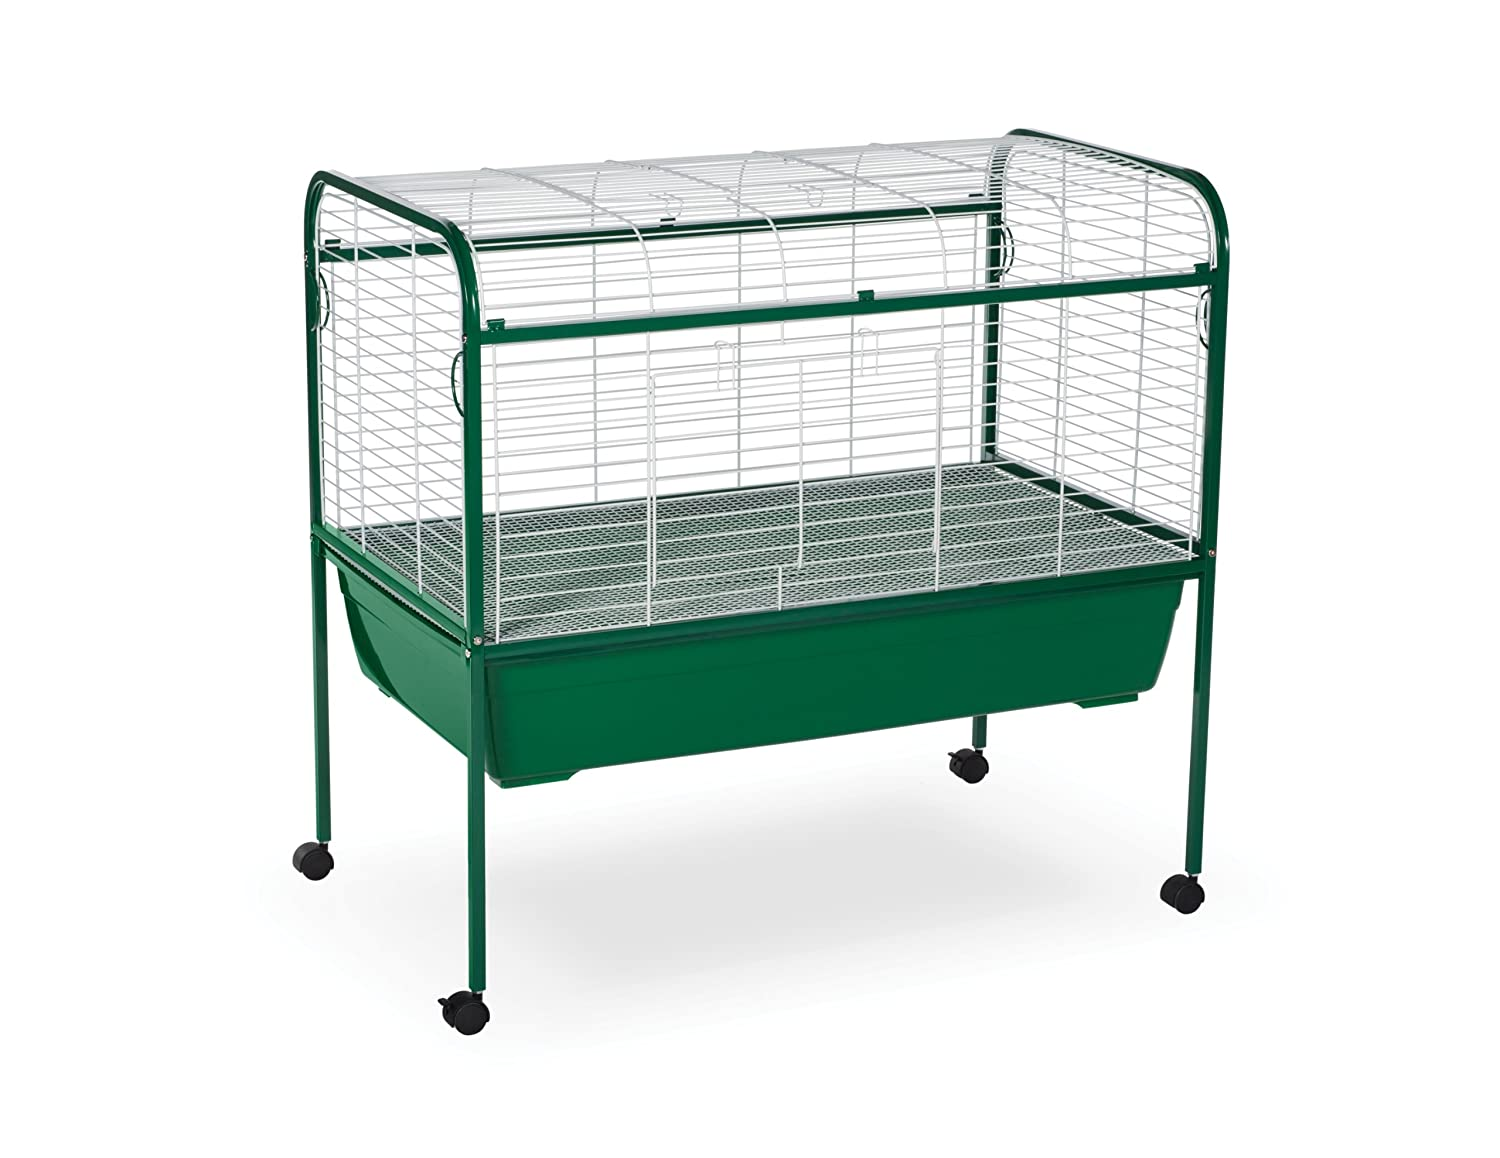 40-Inch by 23-1 2-Inch by 37-Inch Prevue Pet Products Small Animal Cage with Stand, 40-Inch by 23-1 2-Inch by 37-Inch, Green White